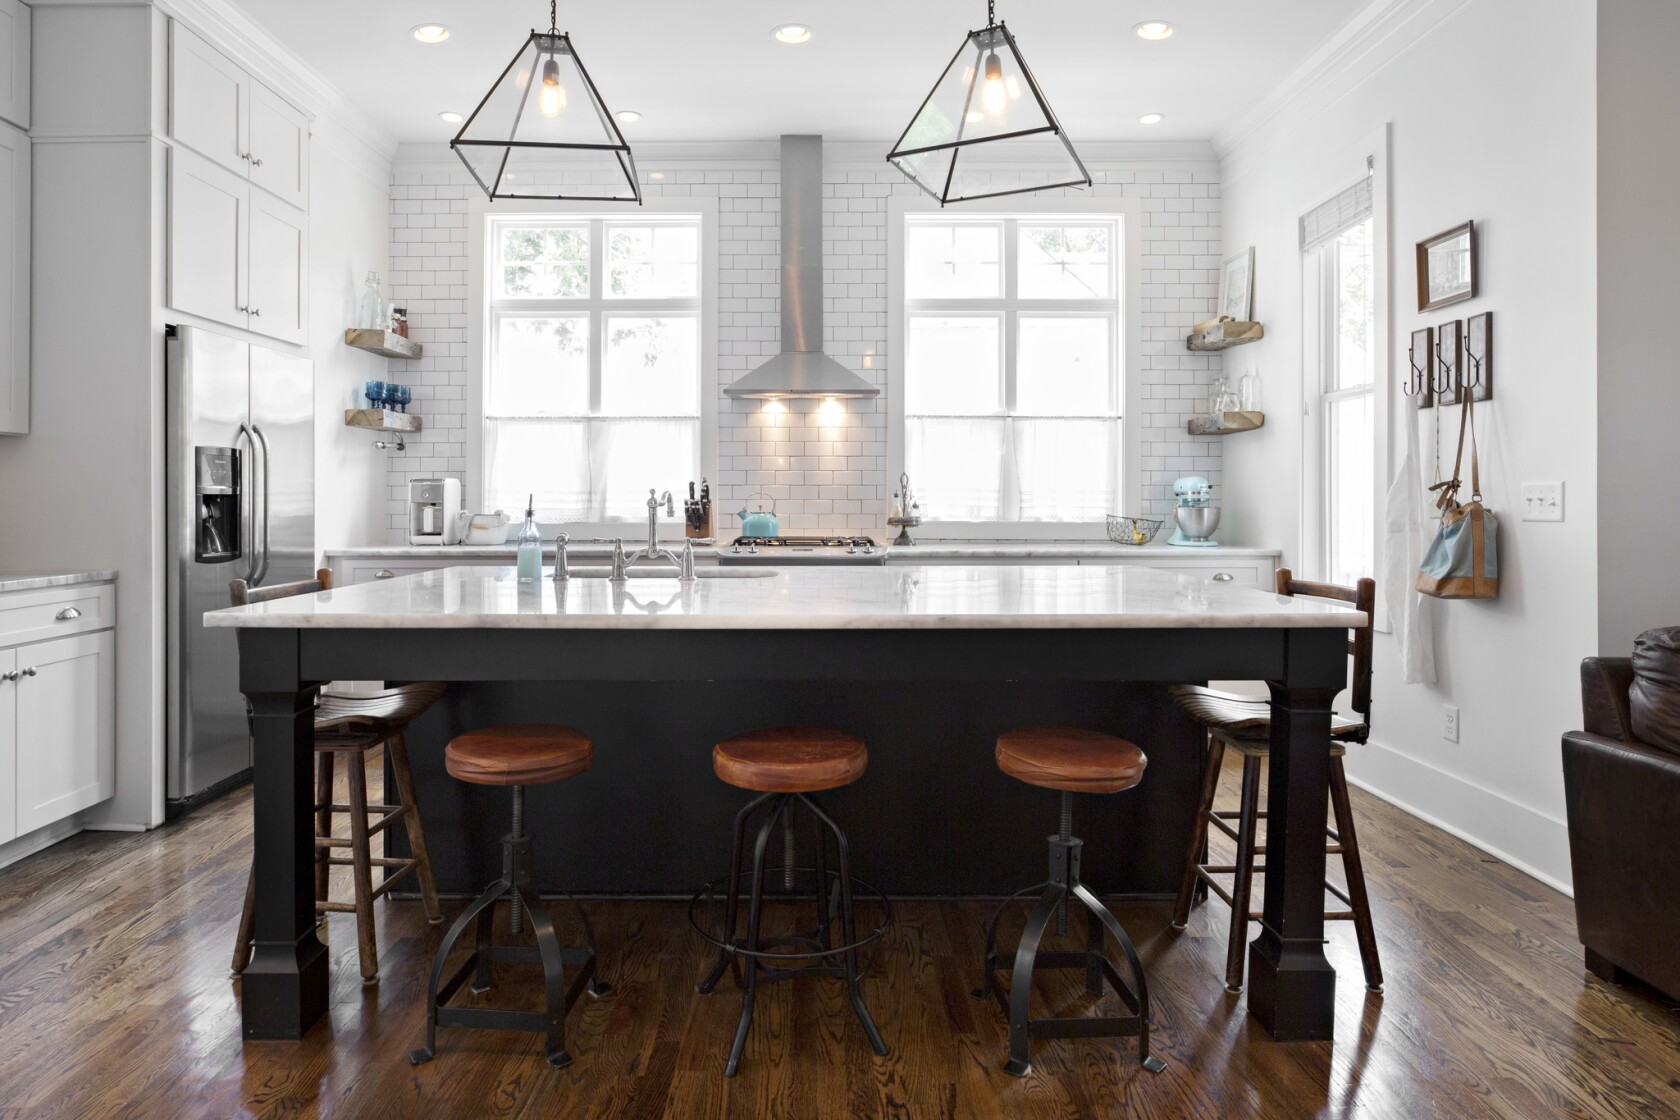 19 Home and Design trends to watch in 2019 - Los Angeles Times Ideas Kitchen For Tile Noveltybacksplash on